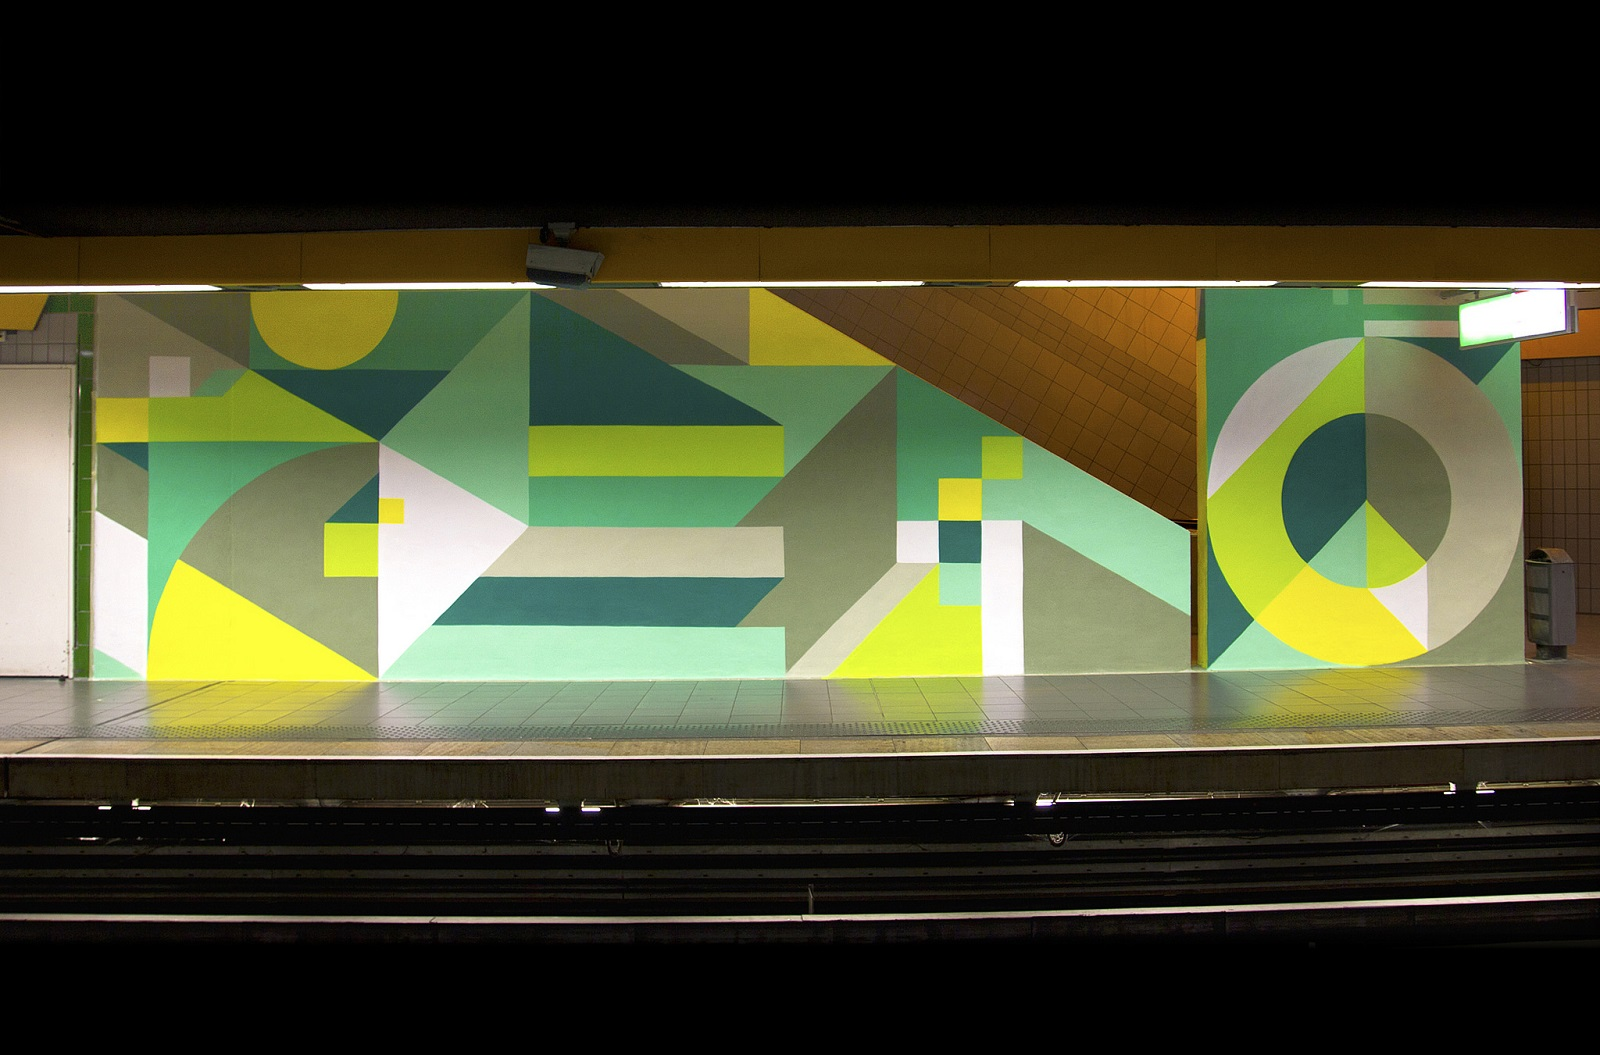 nelio-new-mural-at-station-mermoz-in-lyon-04